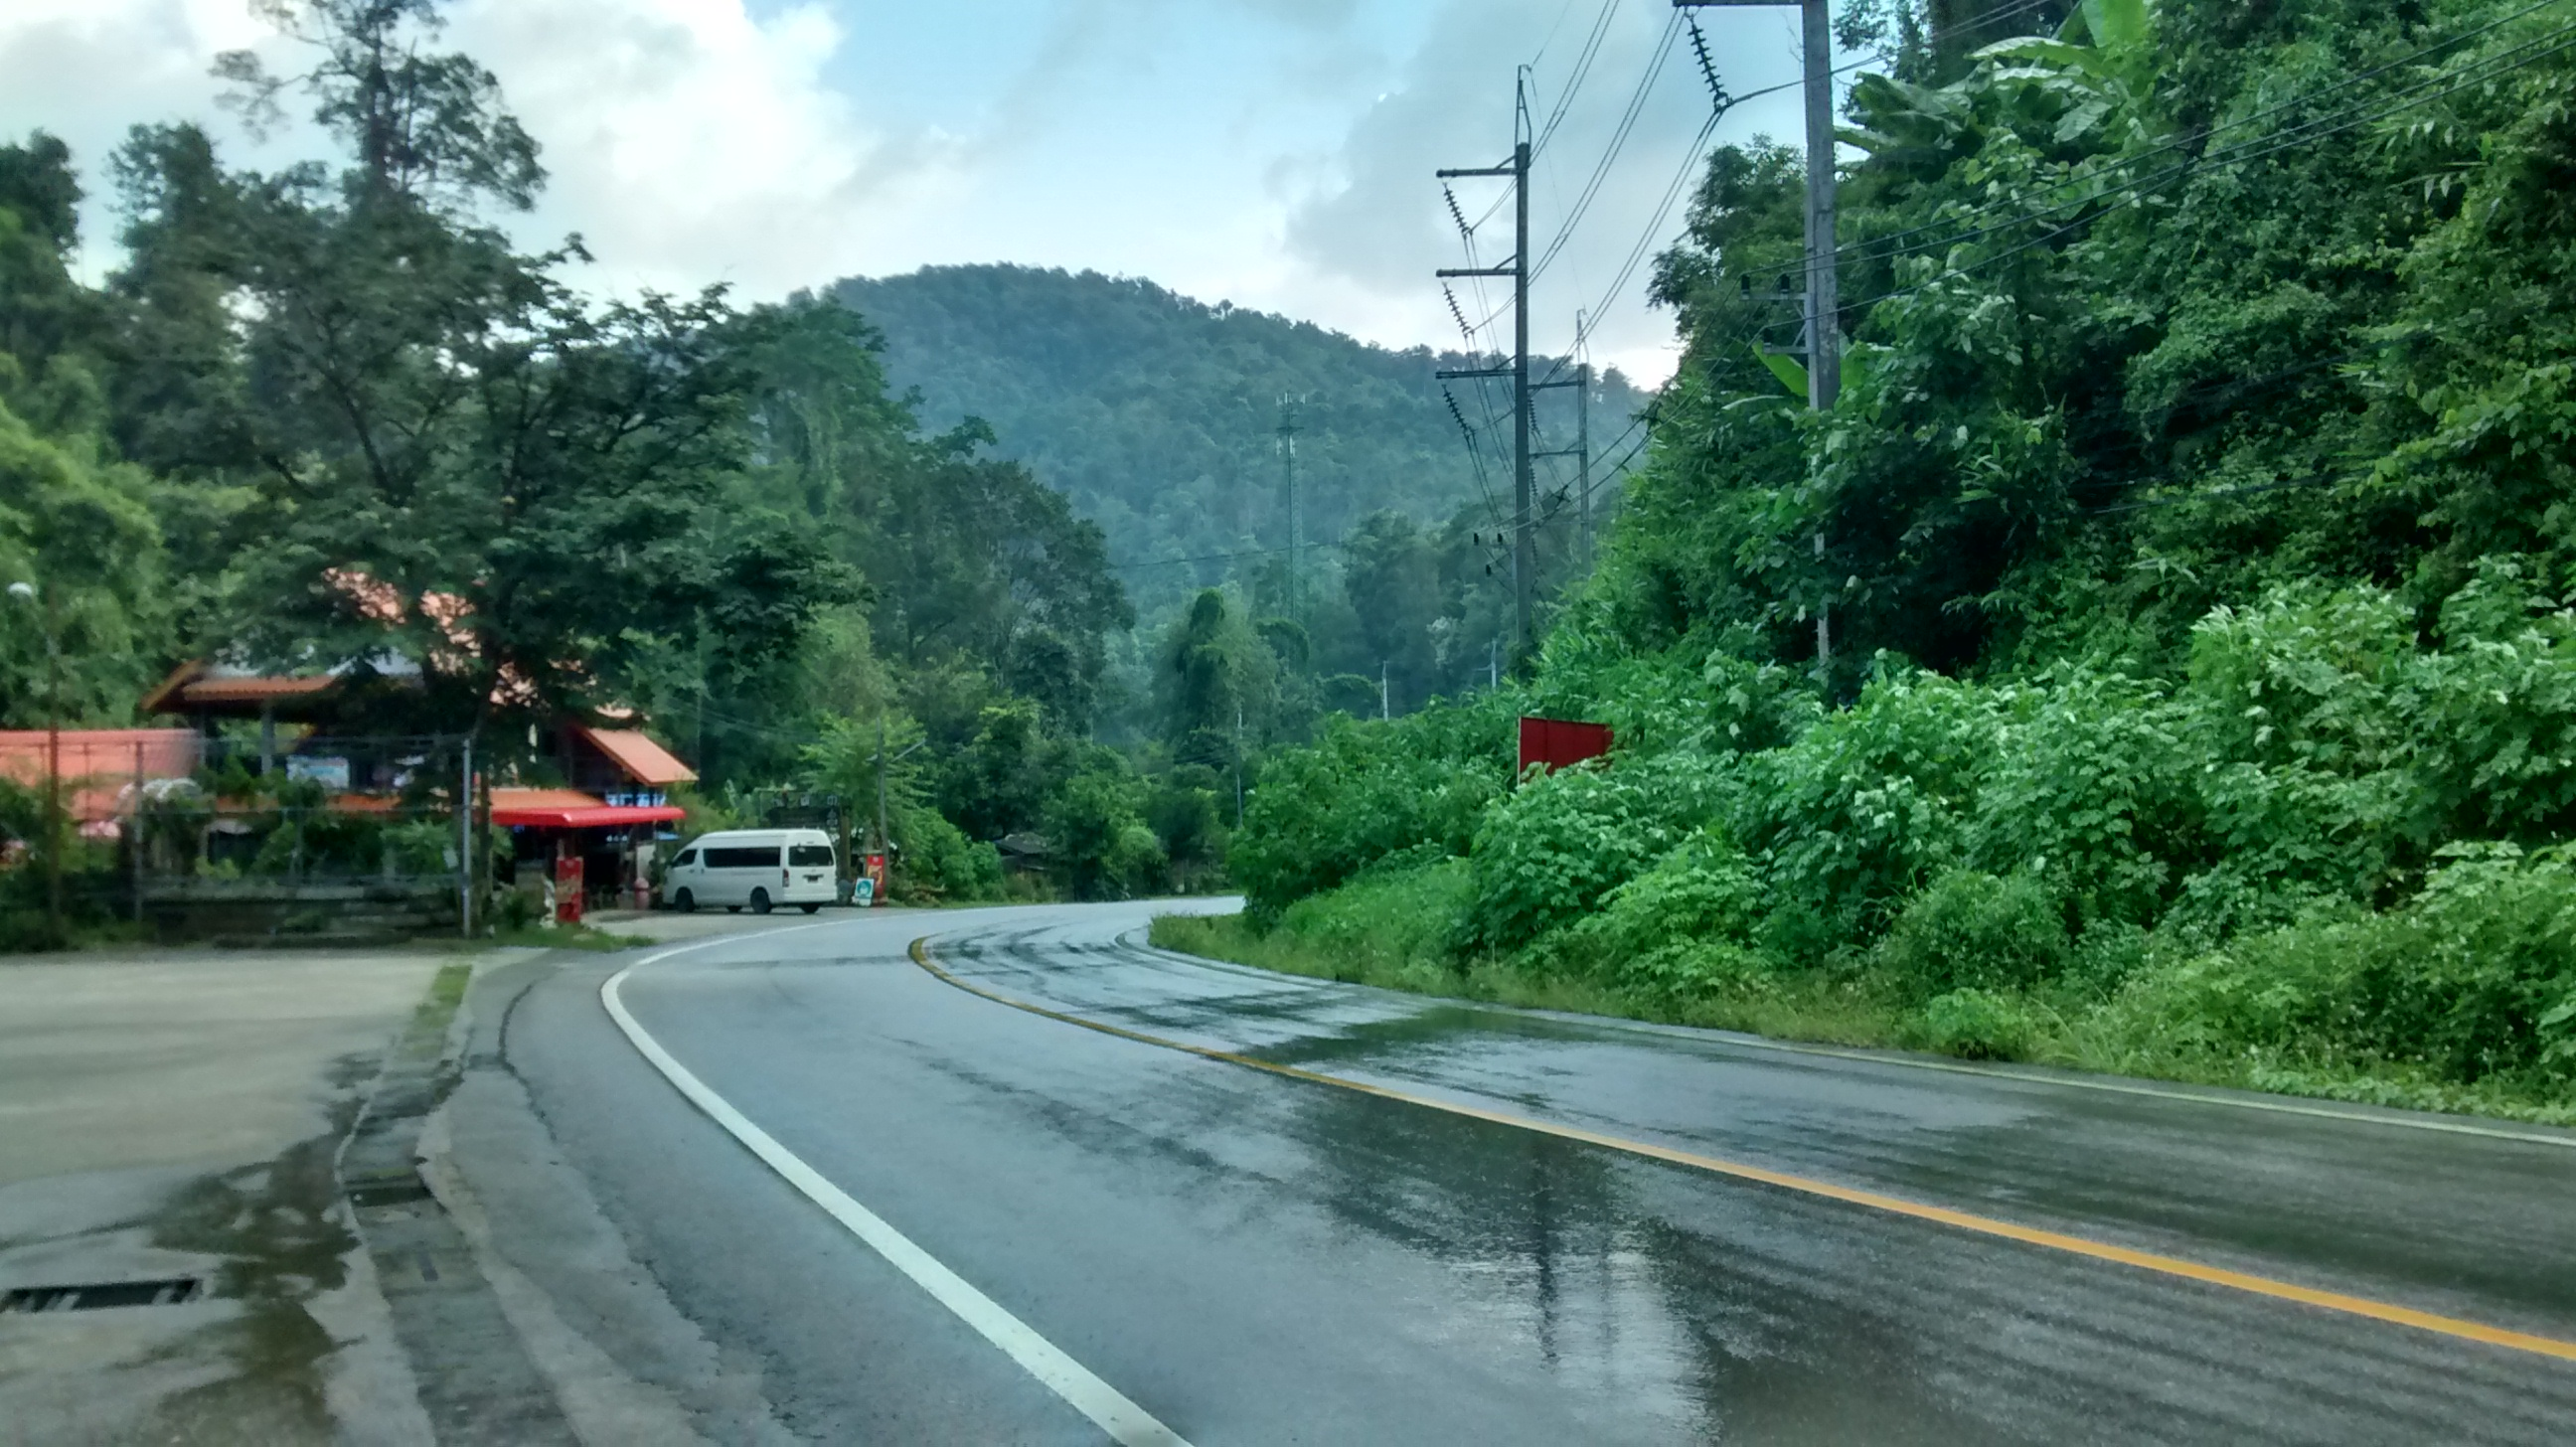 The road to Chiang Mai